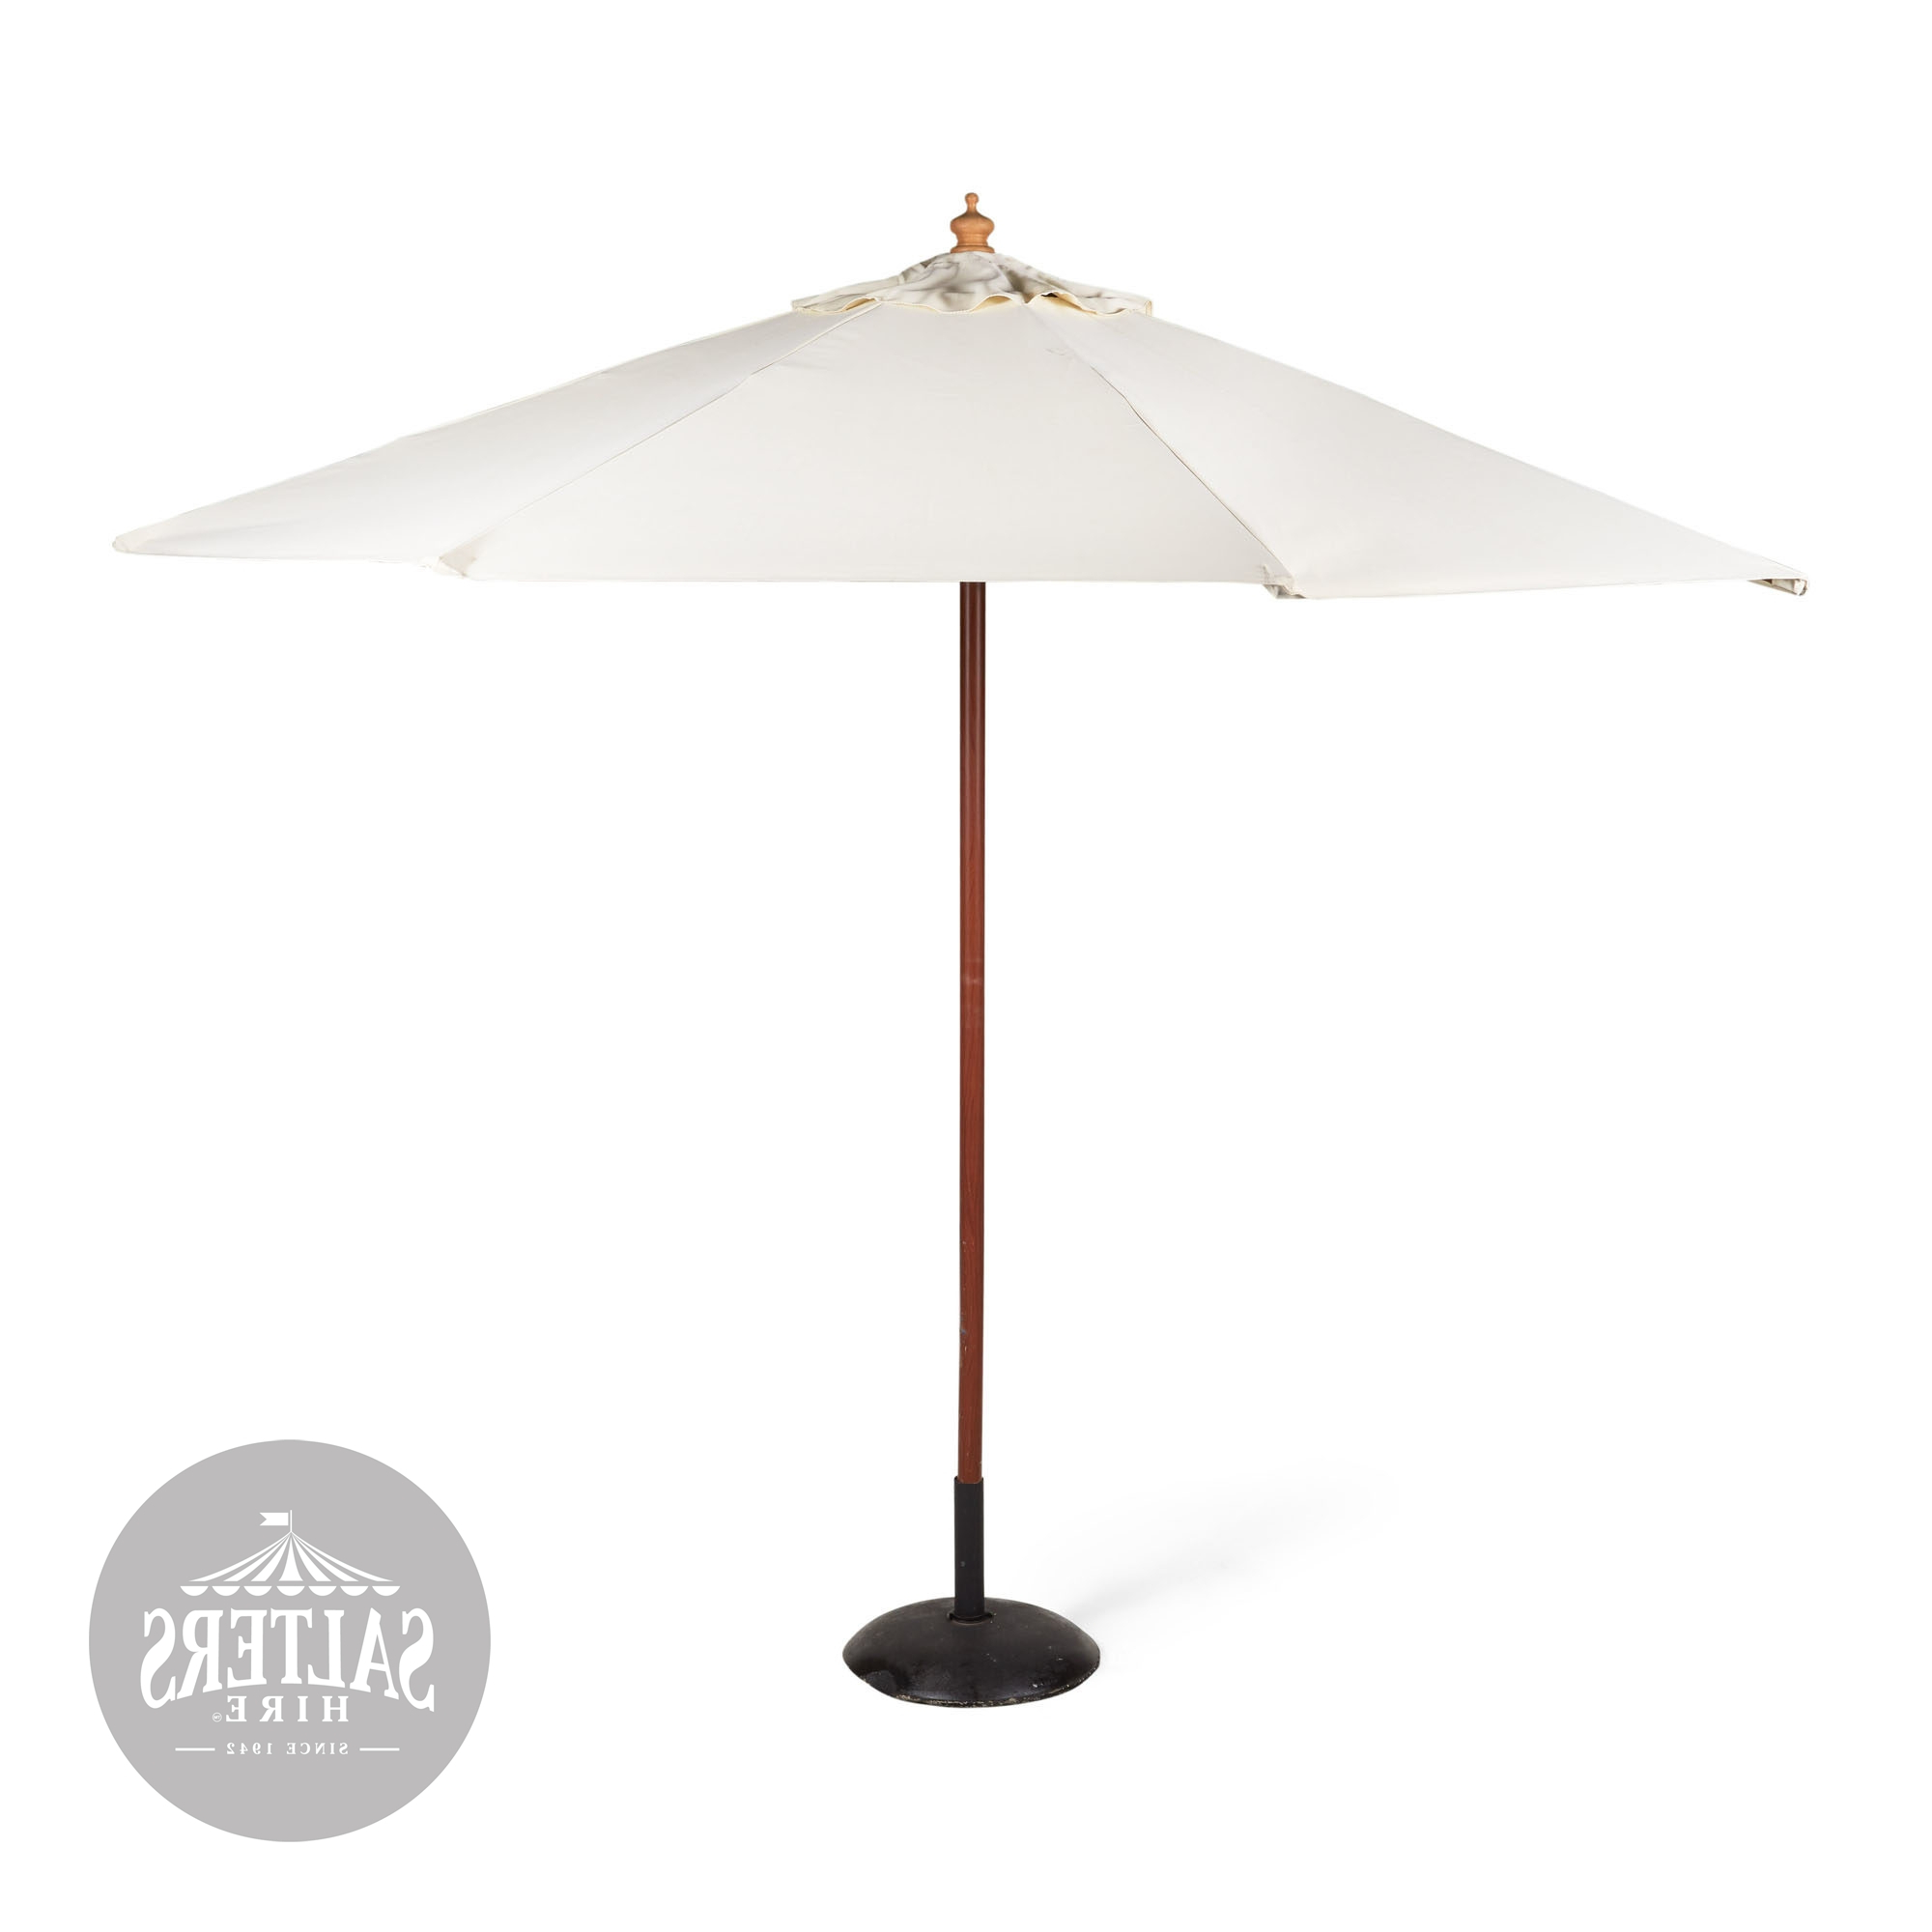 Best And Newest Market Umbrella – 3M No Stand Within Market Umbrellas (View 6 of 20)